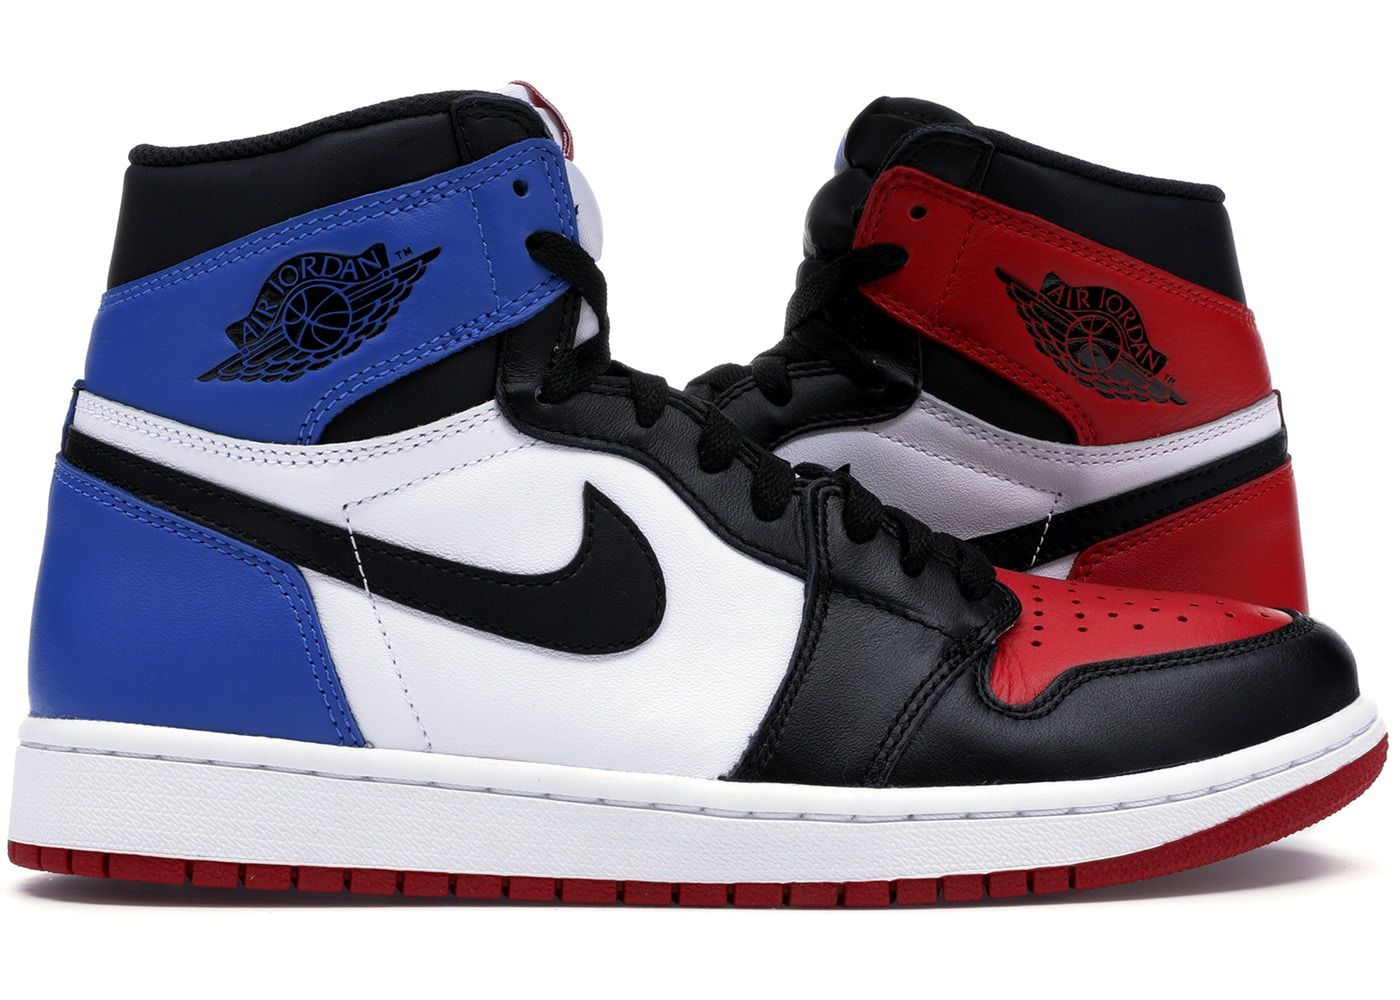 8989bab9 Check out the Jordan 1 Retro Top 3 available on StockX Sneakers Nike Jordan,  Jordans